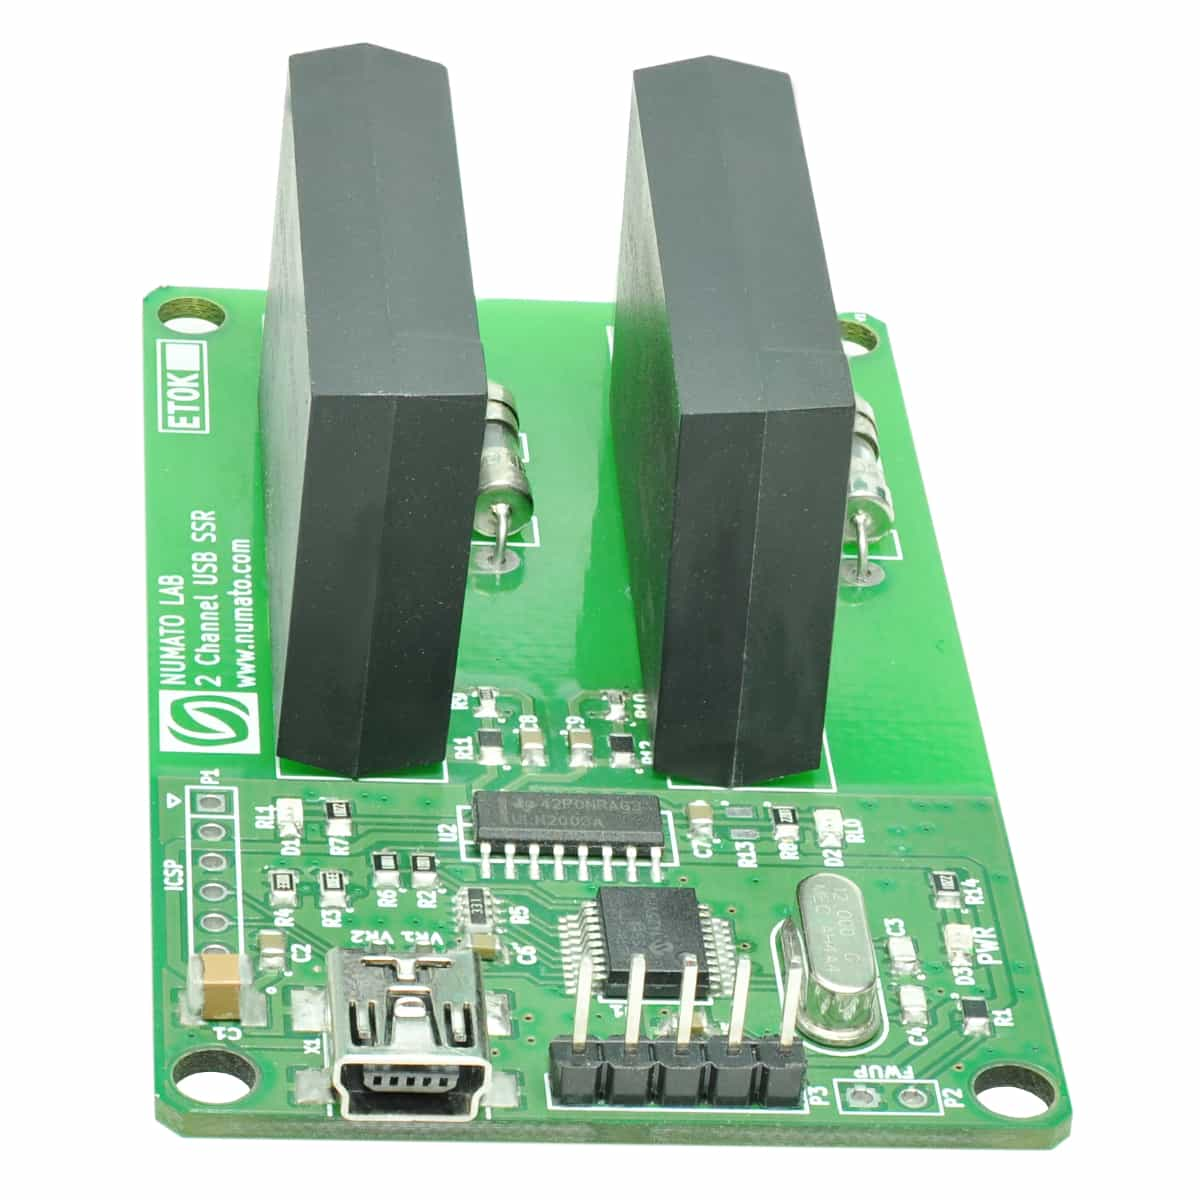 2 channel usb solid state relay module with gpio numato lab rh numato com Solid State Relay Wiring Diagram usb solid state relay board